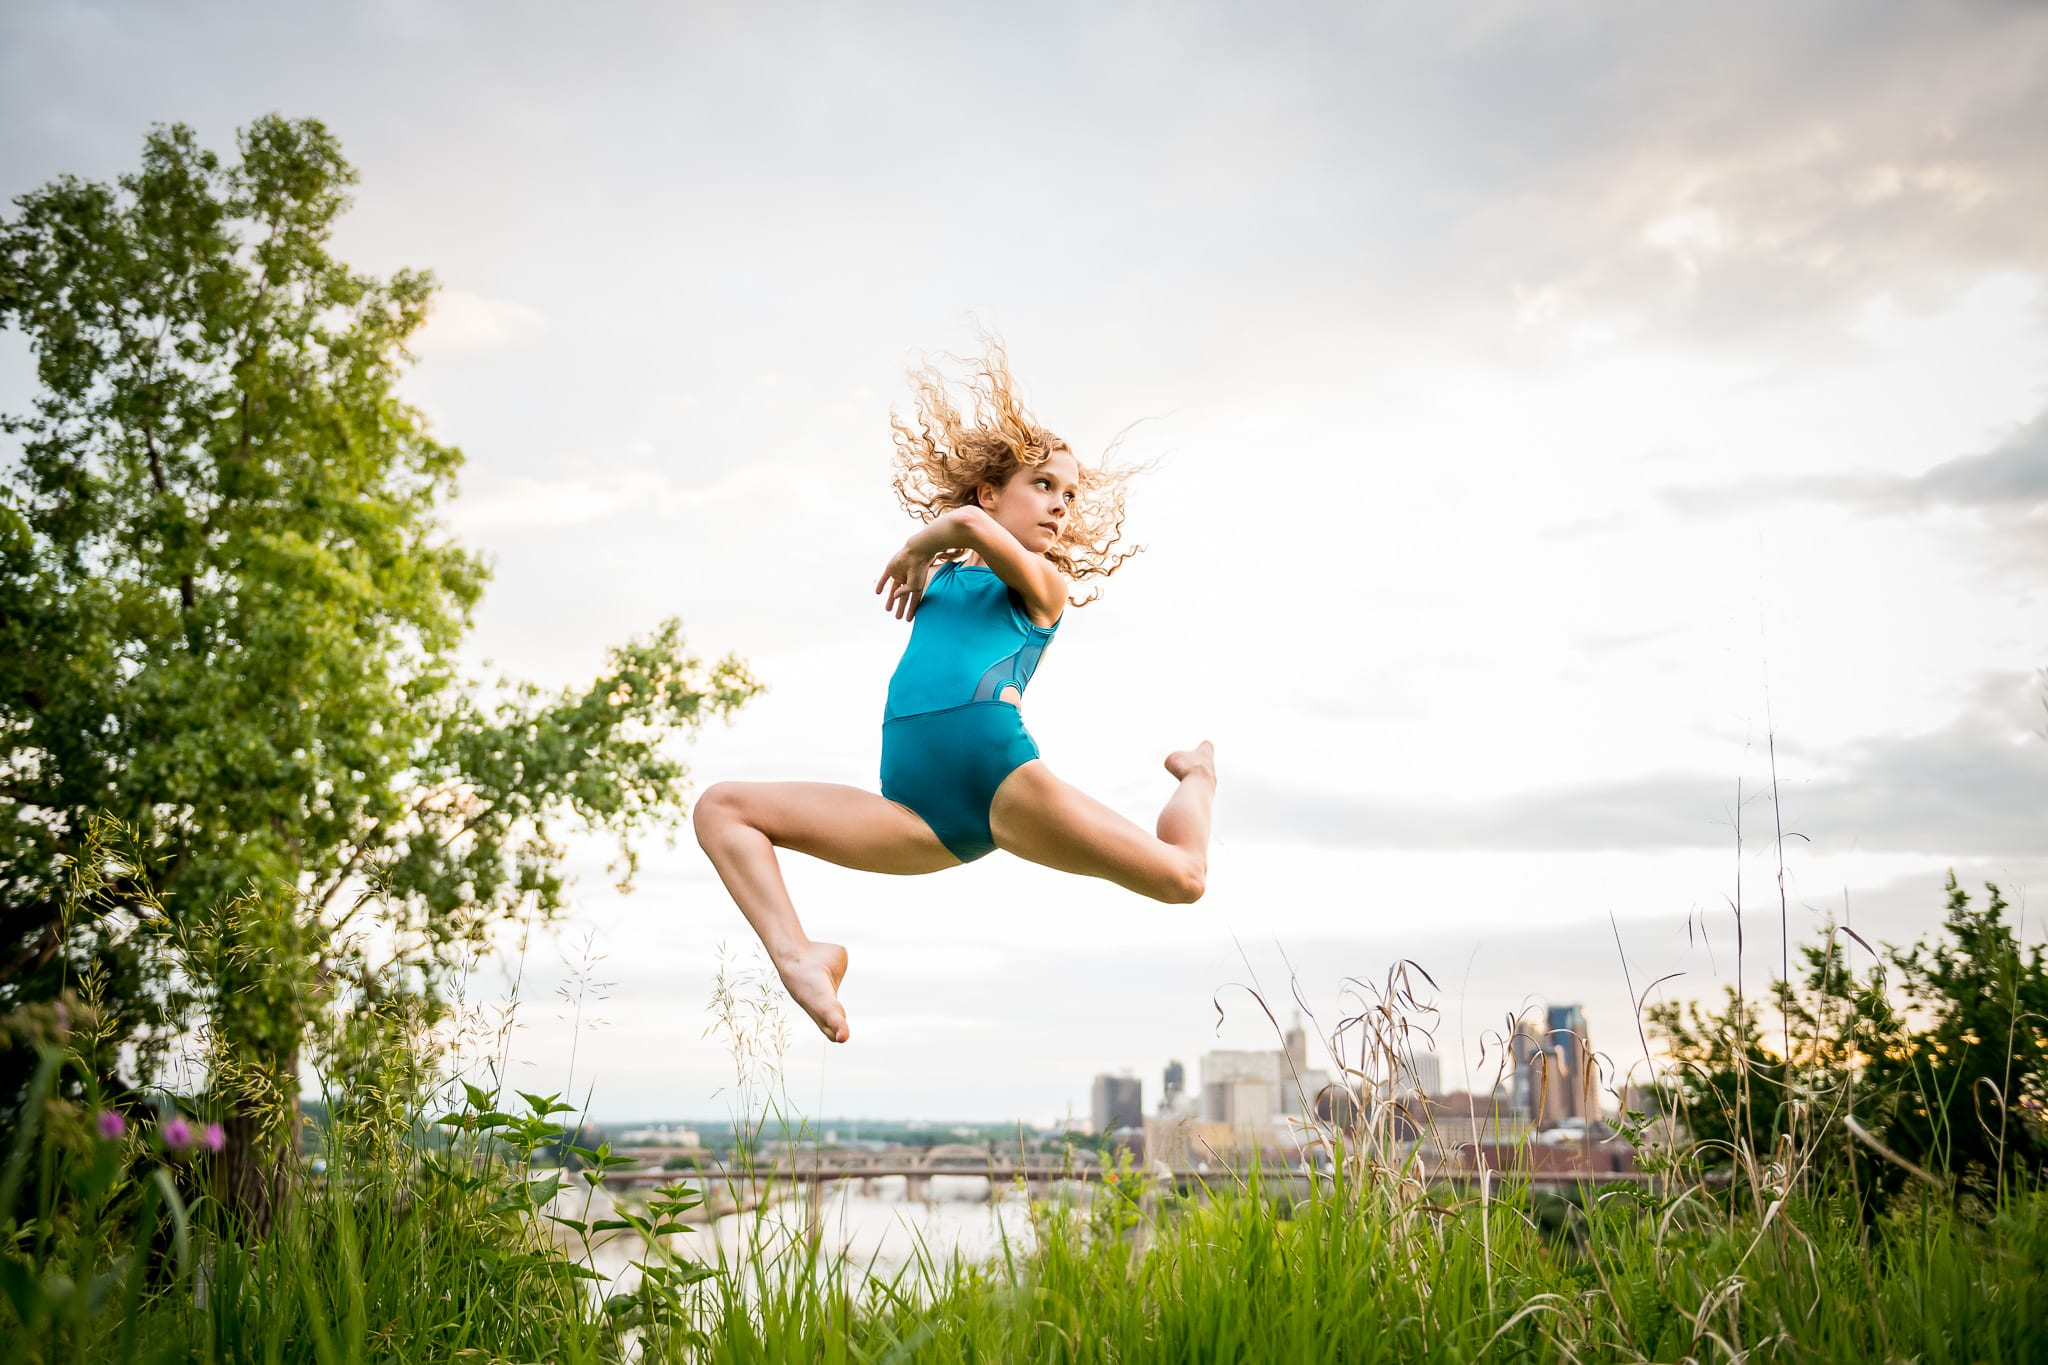 Contemporary dancer jumping and posing in the long grasses of Indian Mounds Park, with the downtown Saint Paul, MN skyline and the Mississippi River in the background.